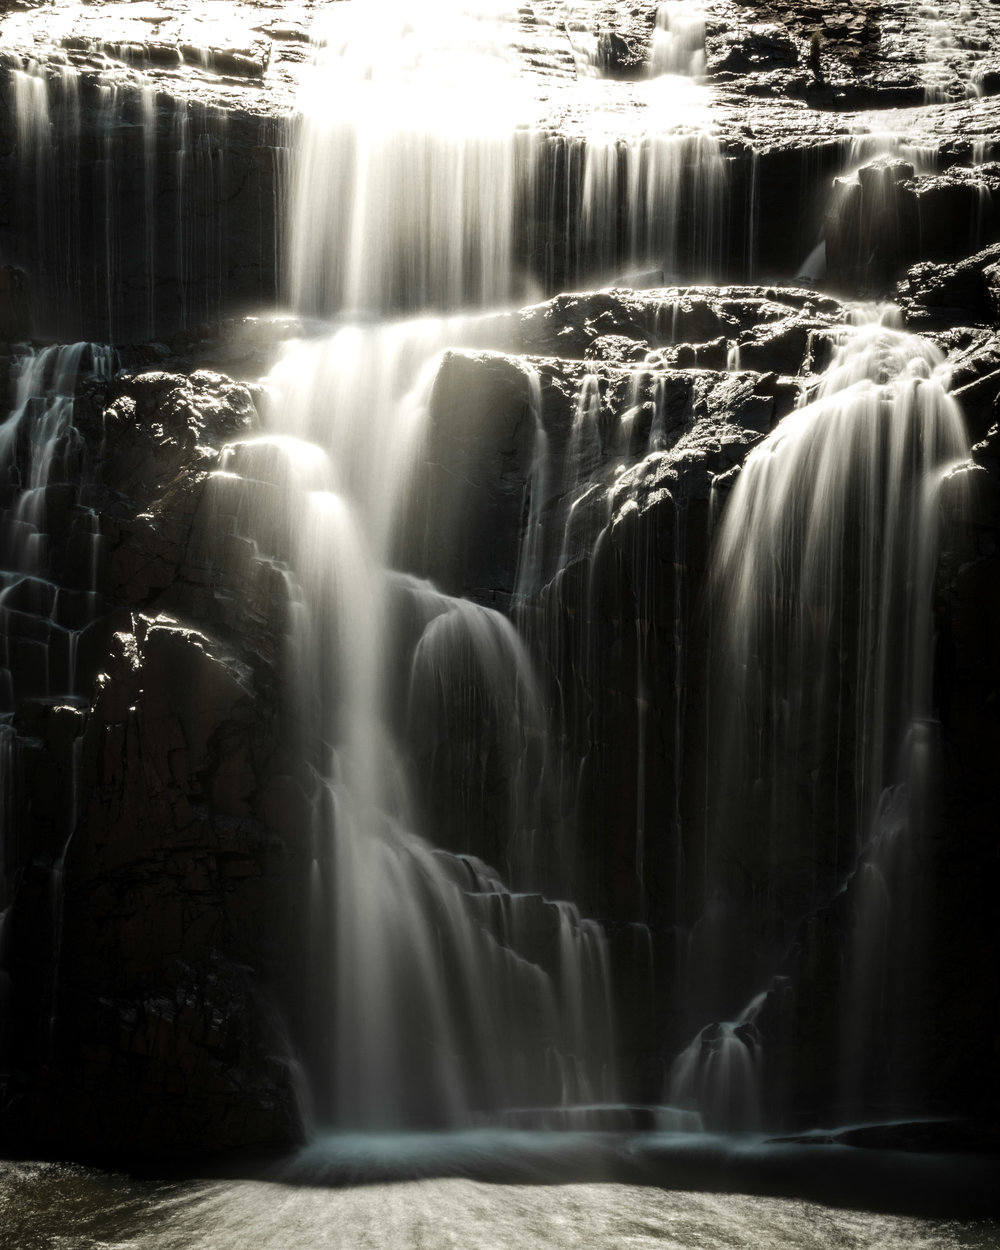 A Calming Feeling Sitting Below A Cascading Falls.